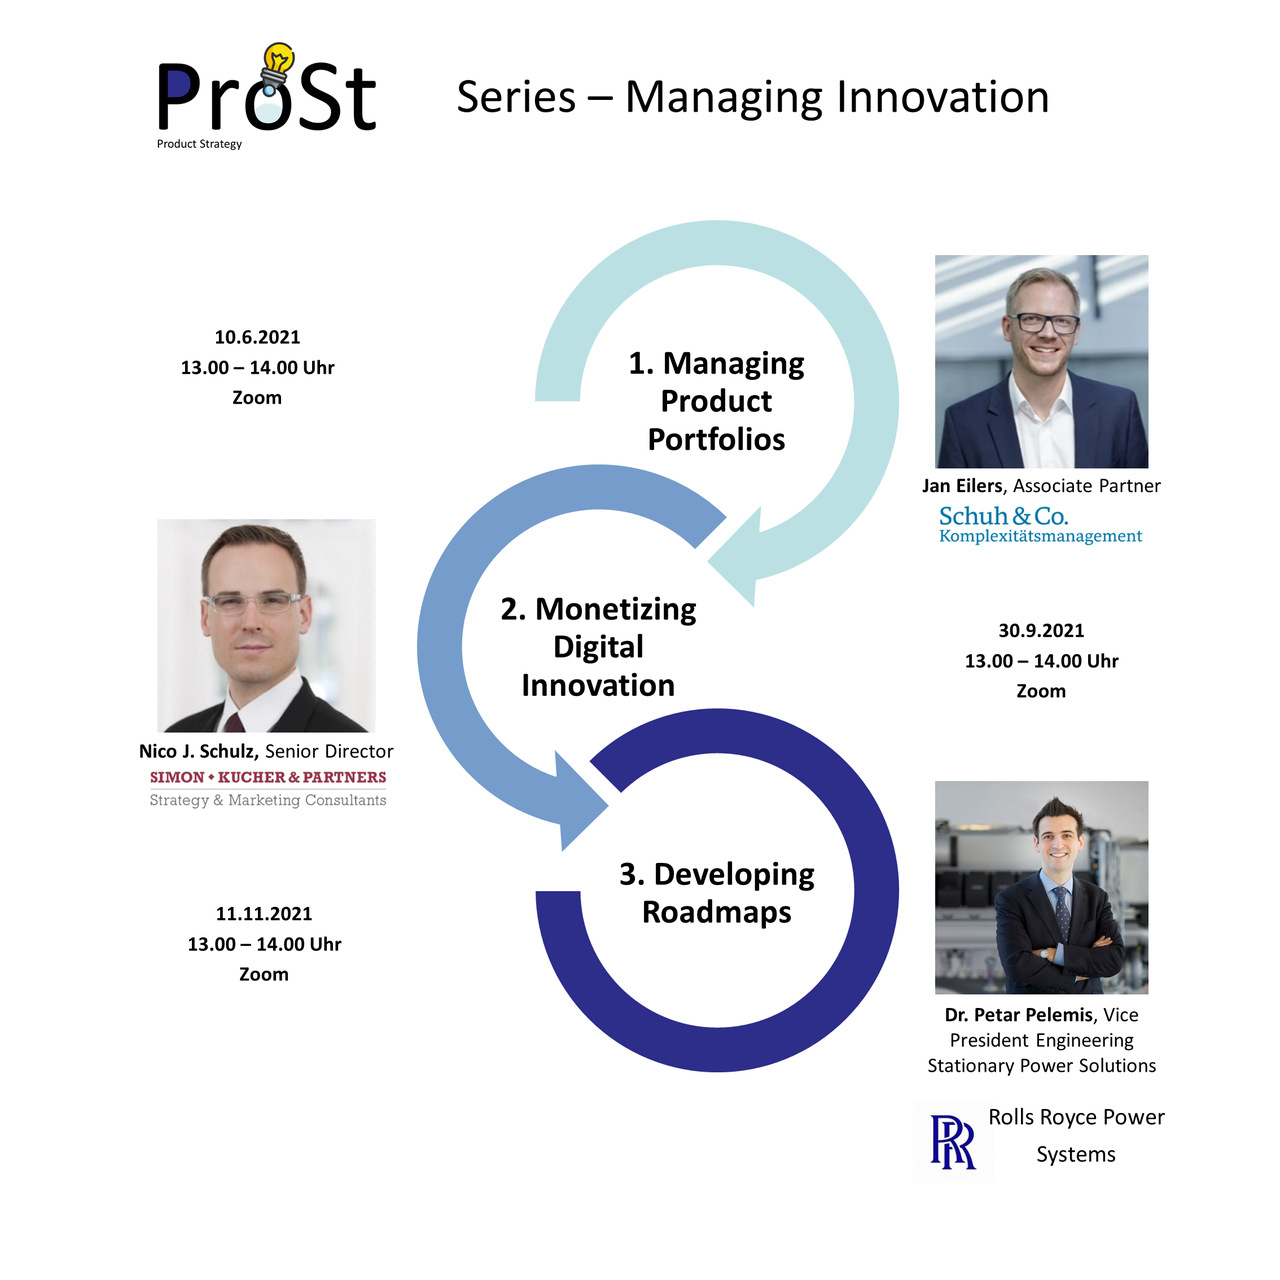 ProSt Serie - Managing Innovation_2.png